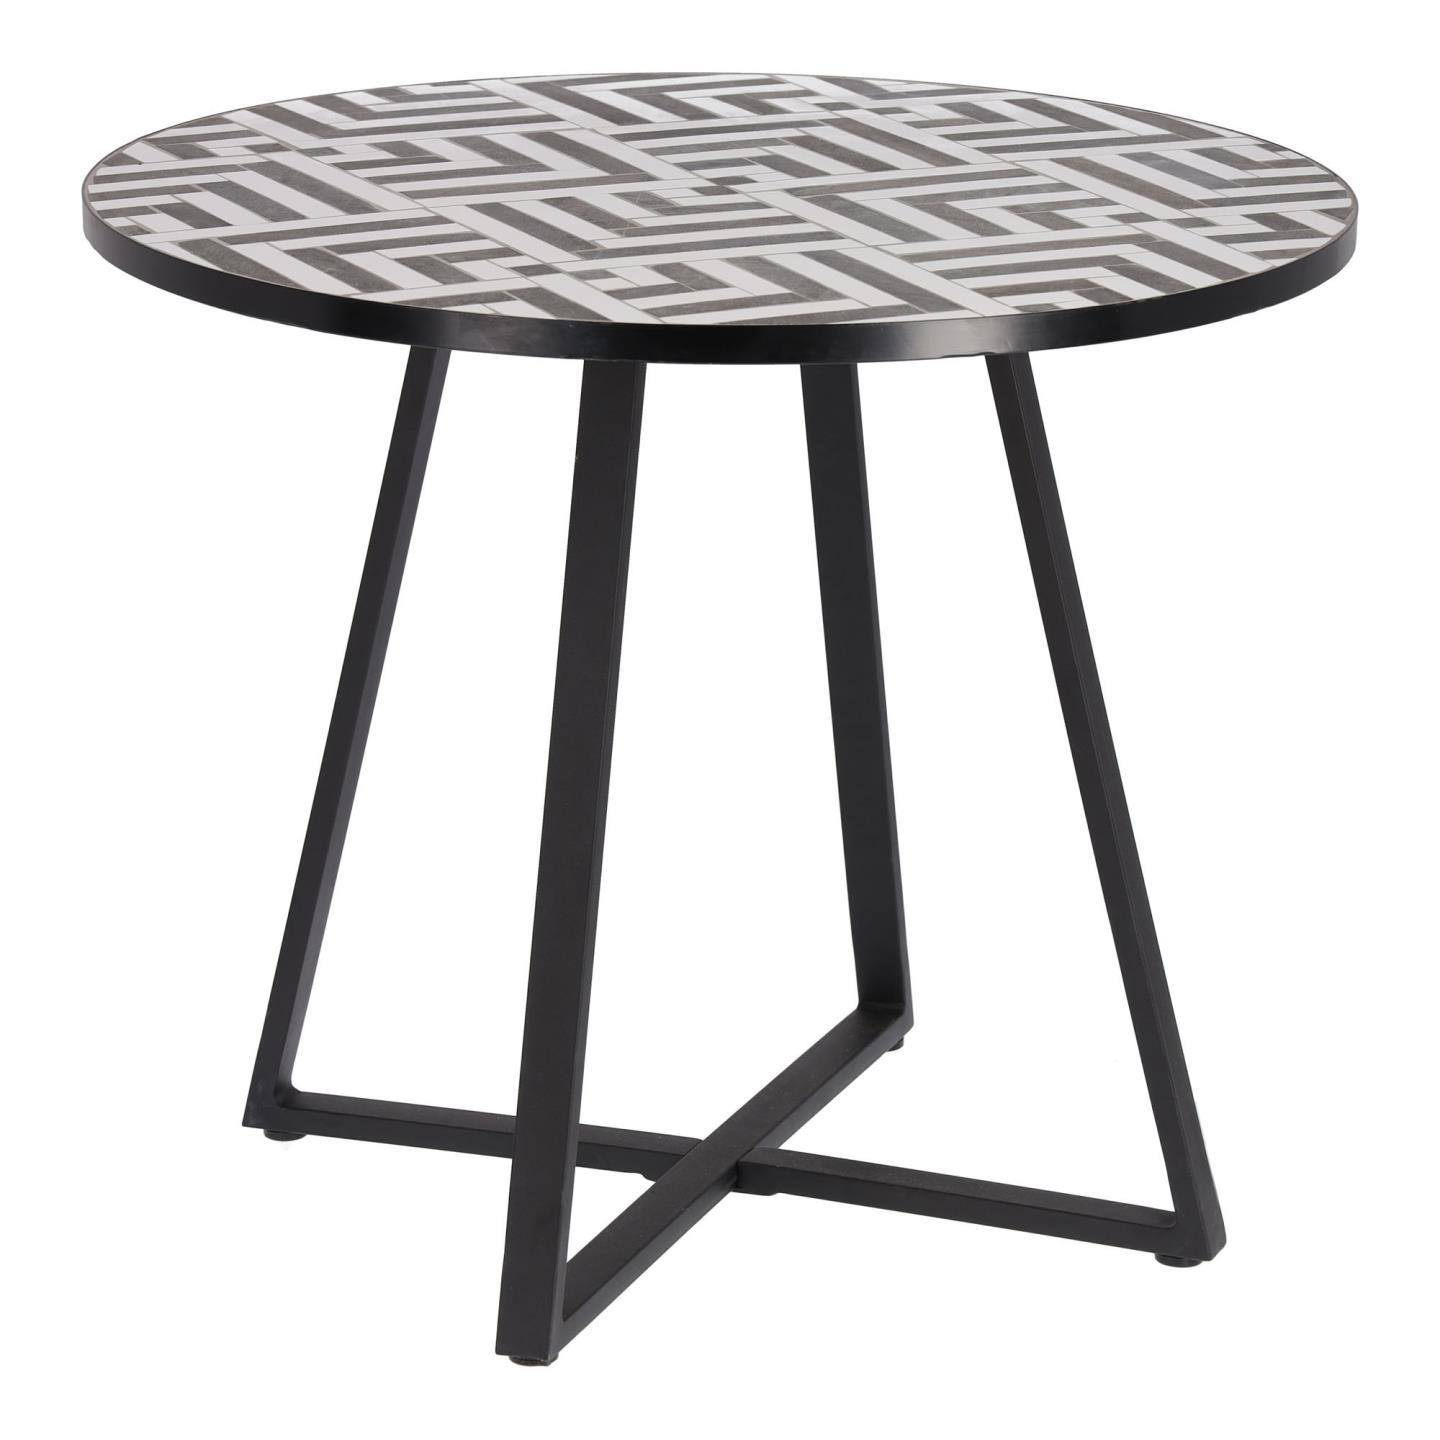 12+ Ceramic Tile Top Dining Table